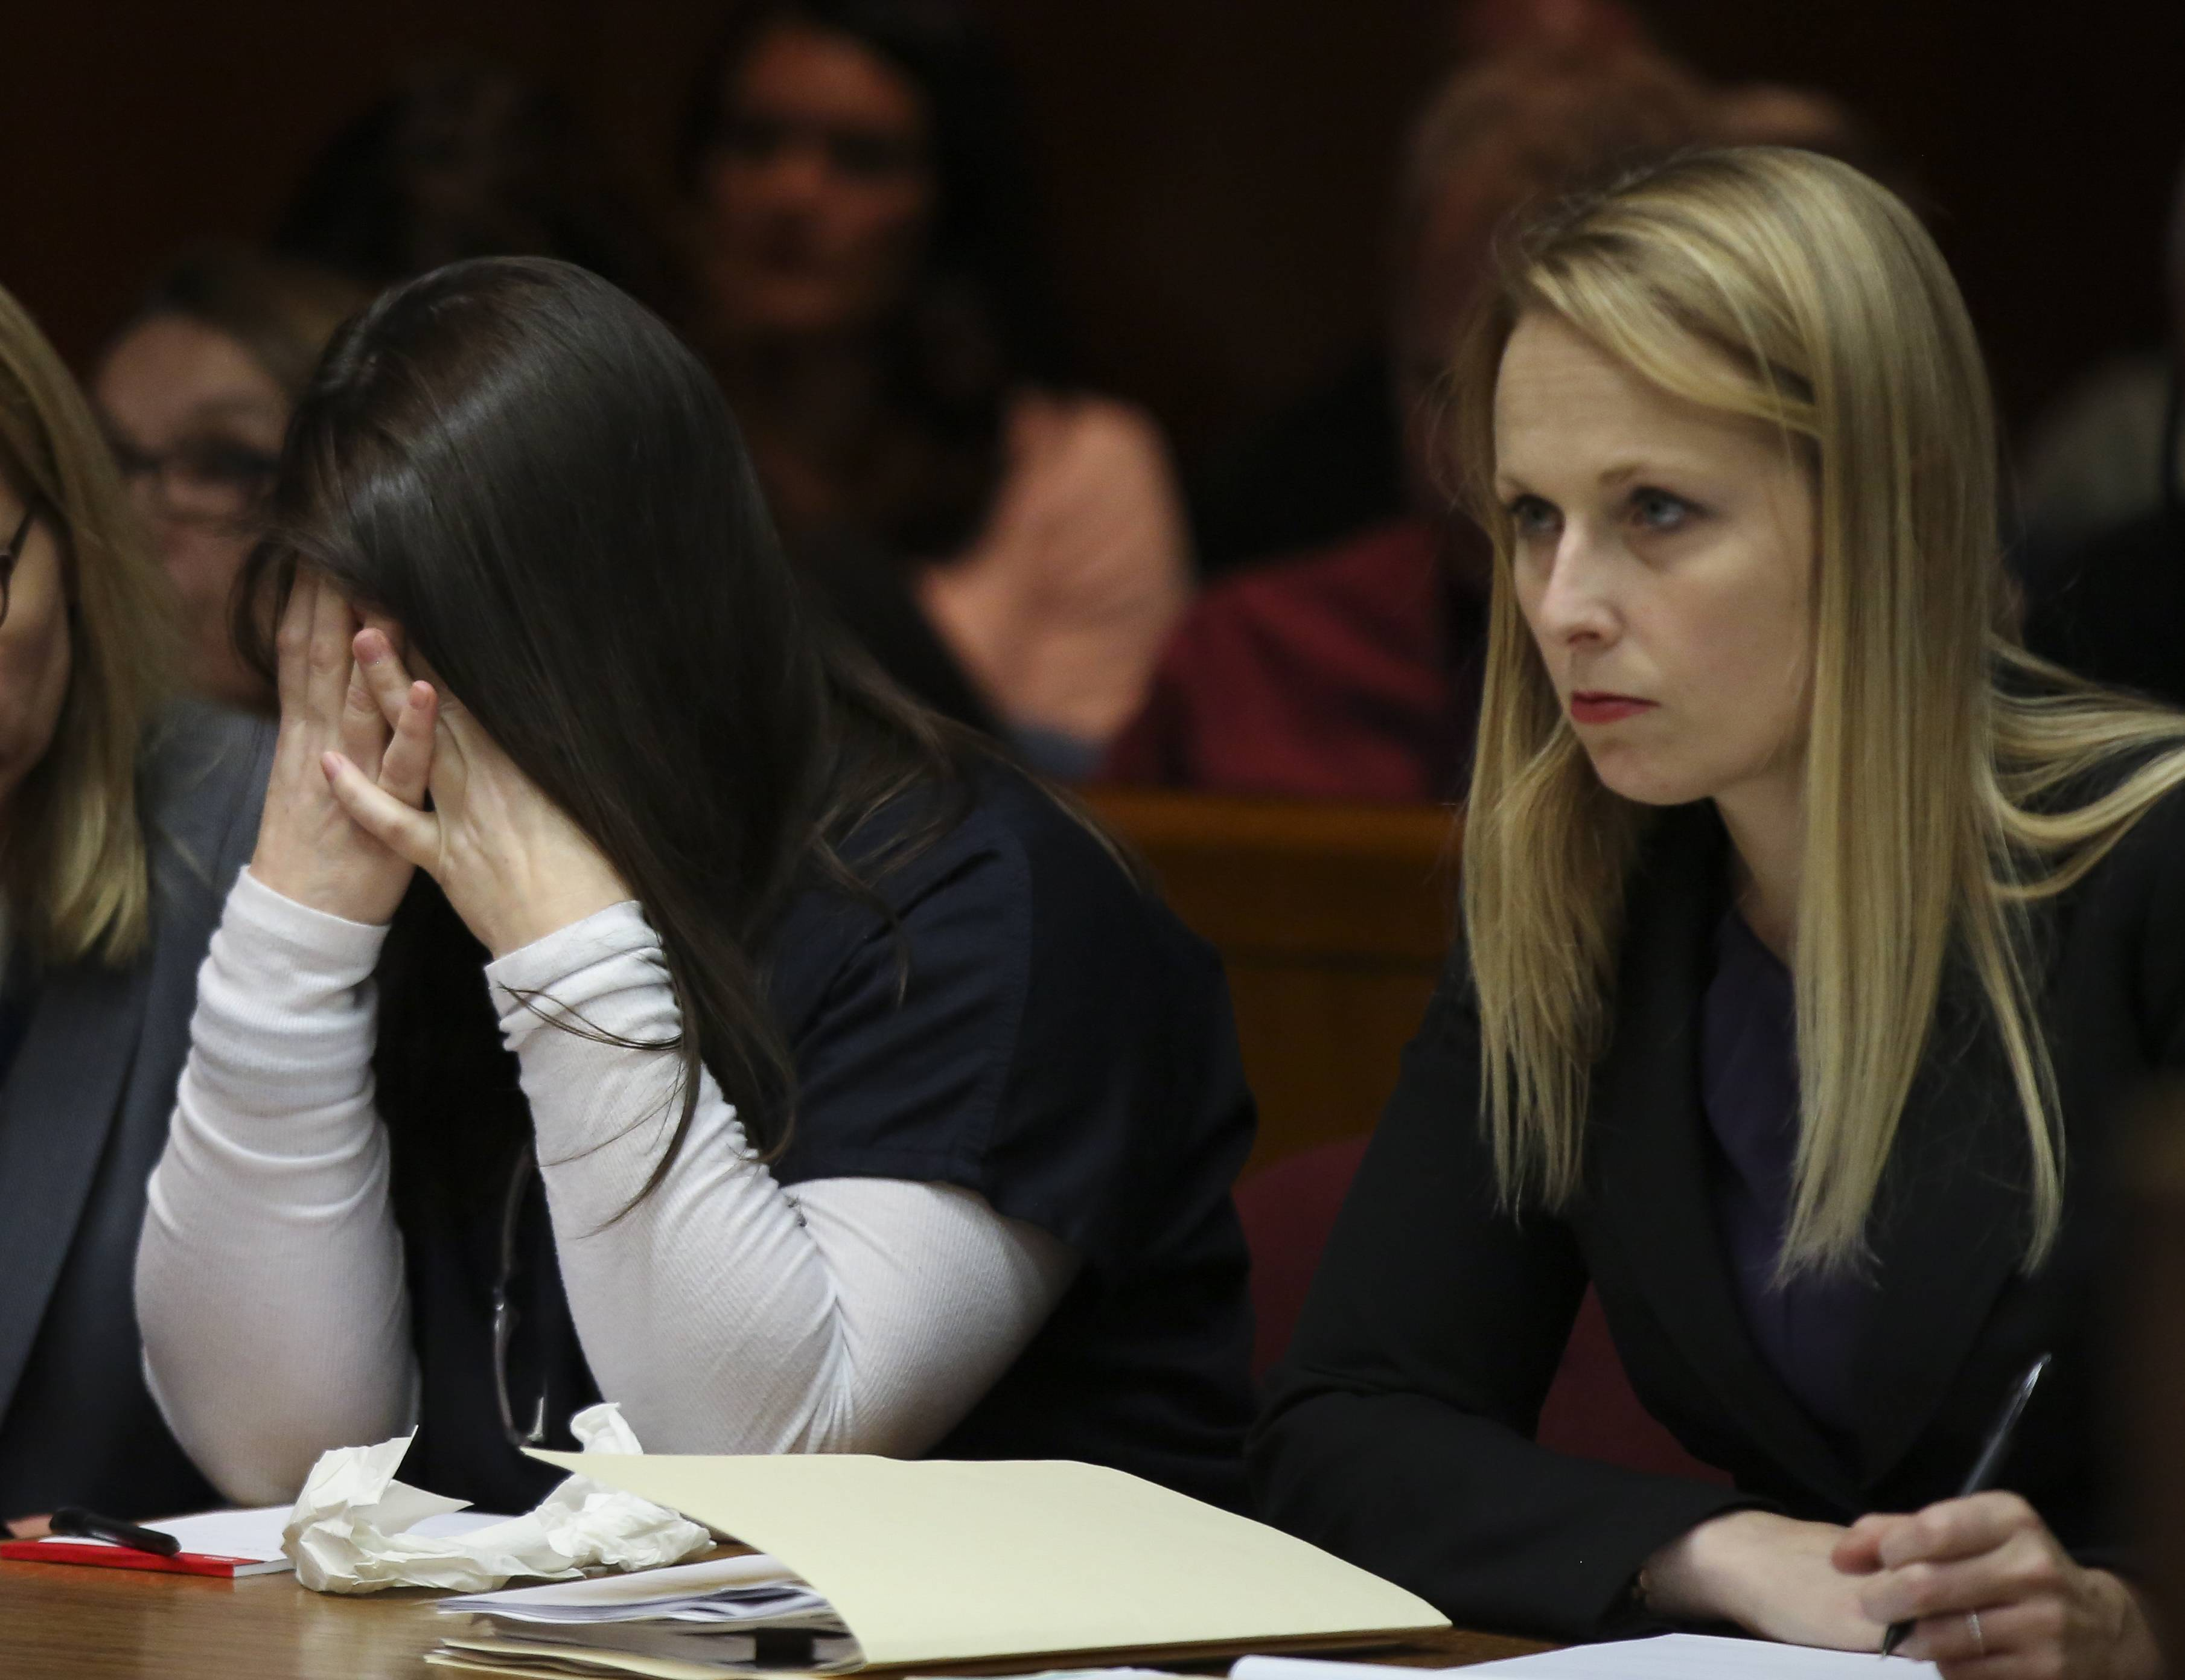 Elzbieta Plackowska hides her face as she listens to opening statements with Assistant Public Defender Kristen Nevdal, right, at the DuPage County courthouse in Wheaton on Tuesday. She faces murder charges for killing her son and young girl she was baby-sitting on Oct. 30, 2012 in Naperville.